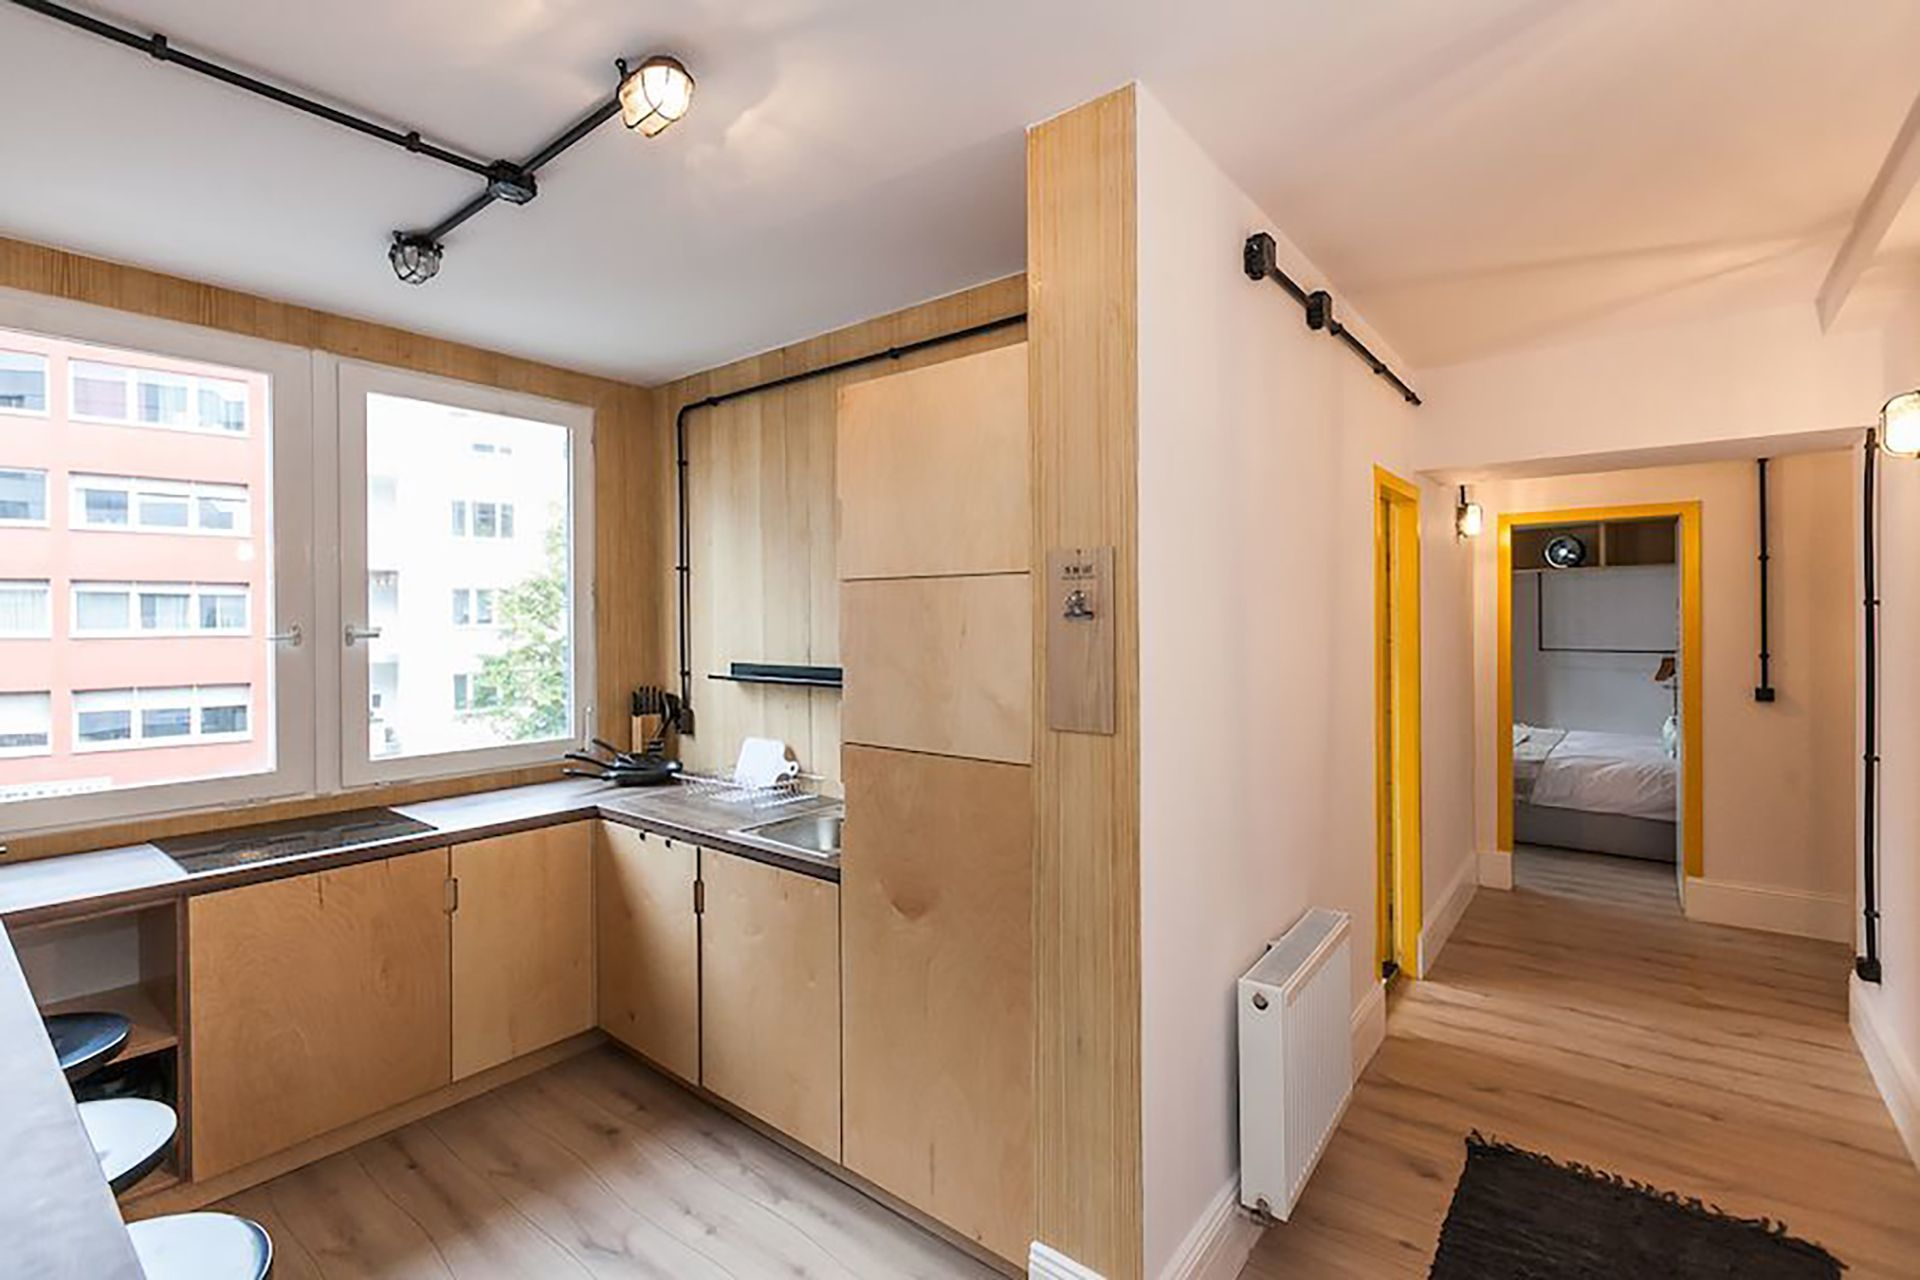 Private Room - Small apartment to rent in Berlin BILE-B103-5023-2